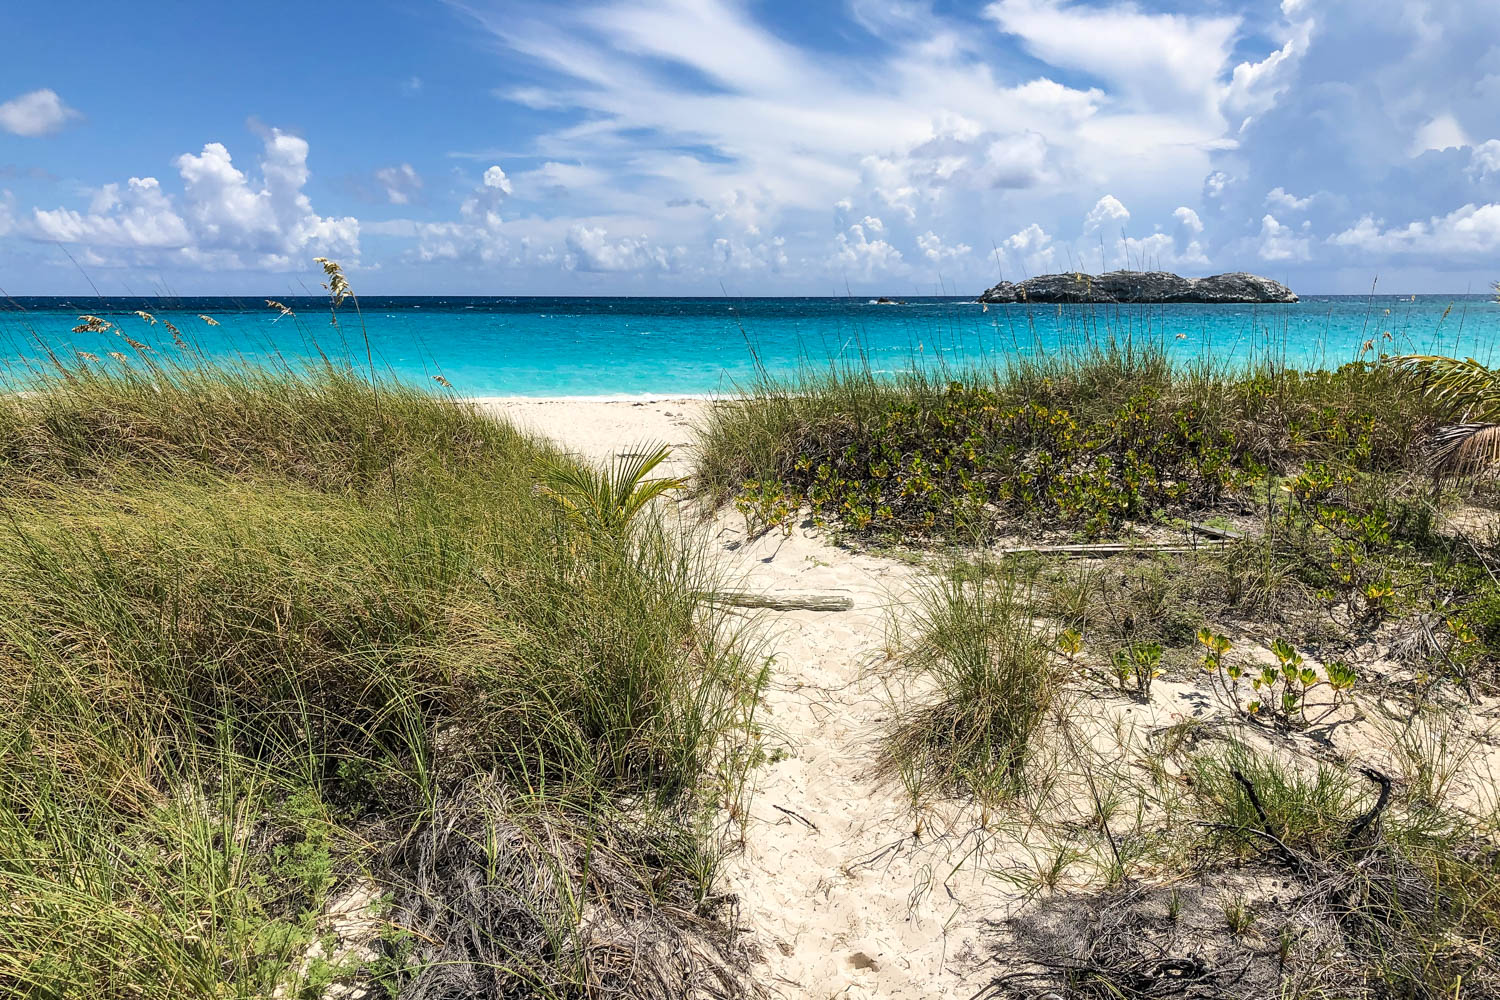 Compass Cay Beach Bahamas is located on the same island as the Compass Cay Marina. Visitors can walk to the Compass Cay Beach from the Swimming with Nurse Sharks experience. This is one of the top beaches in the Bahamas.